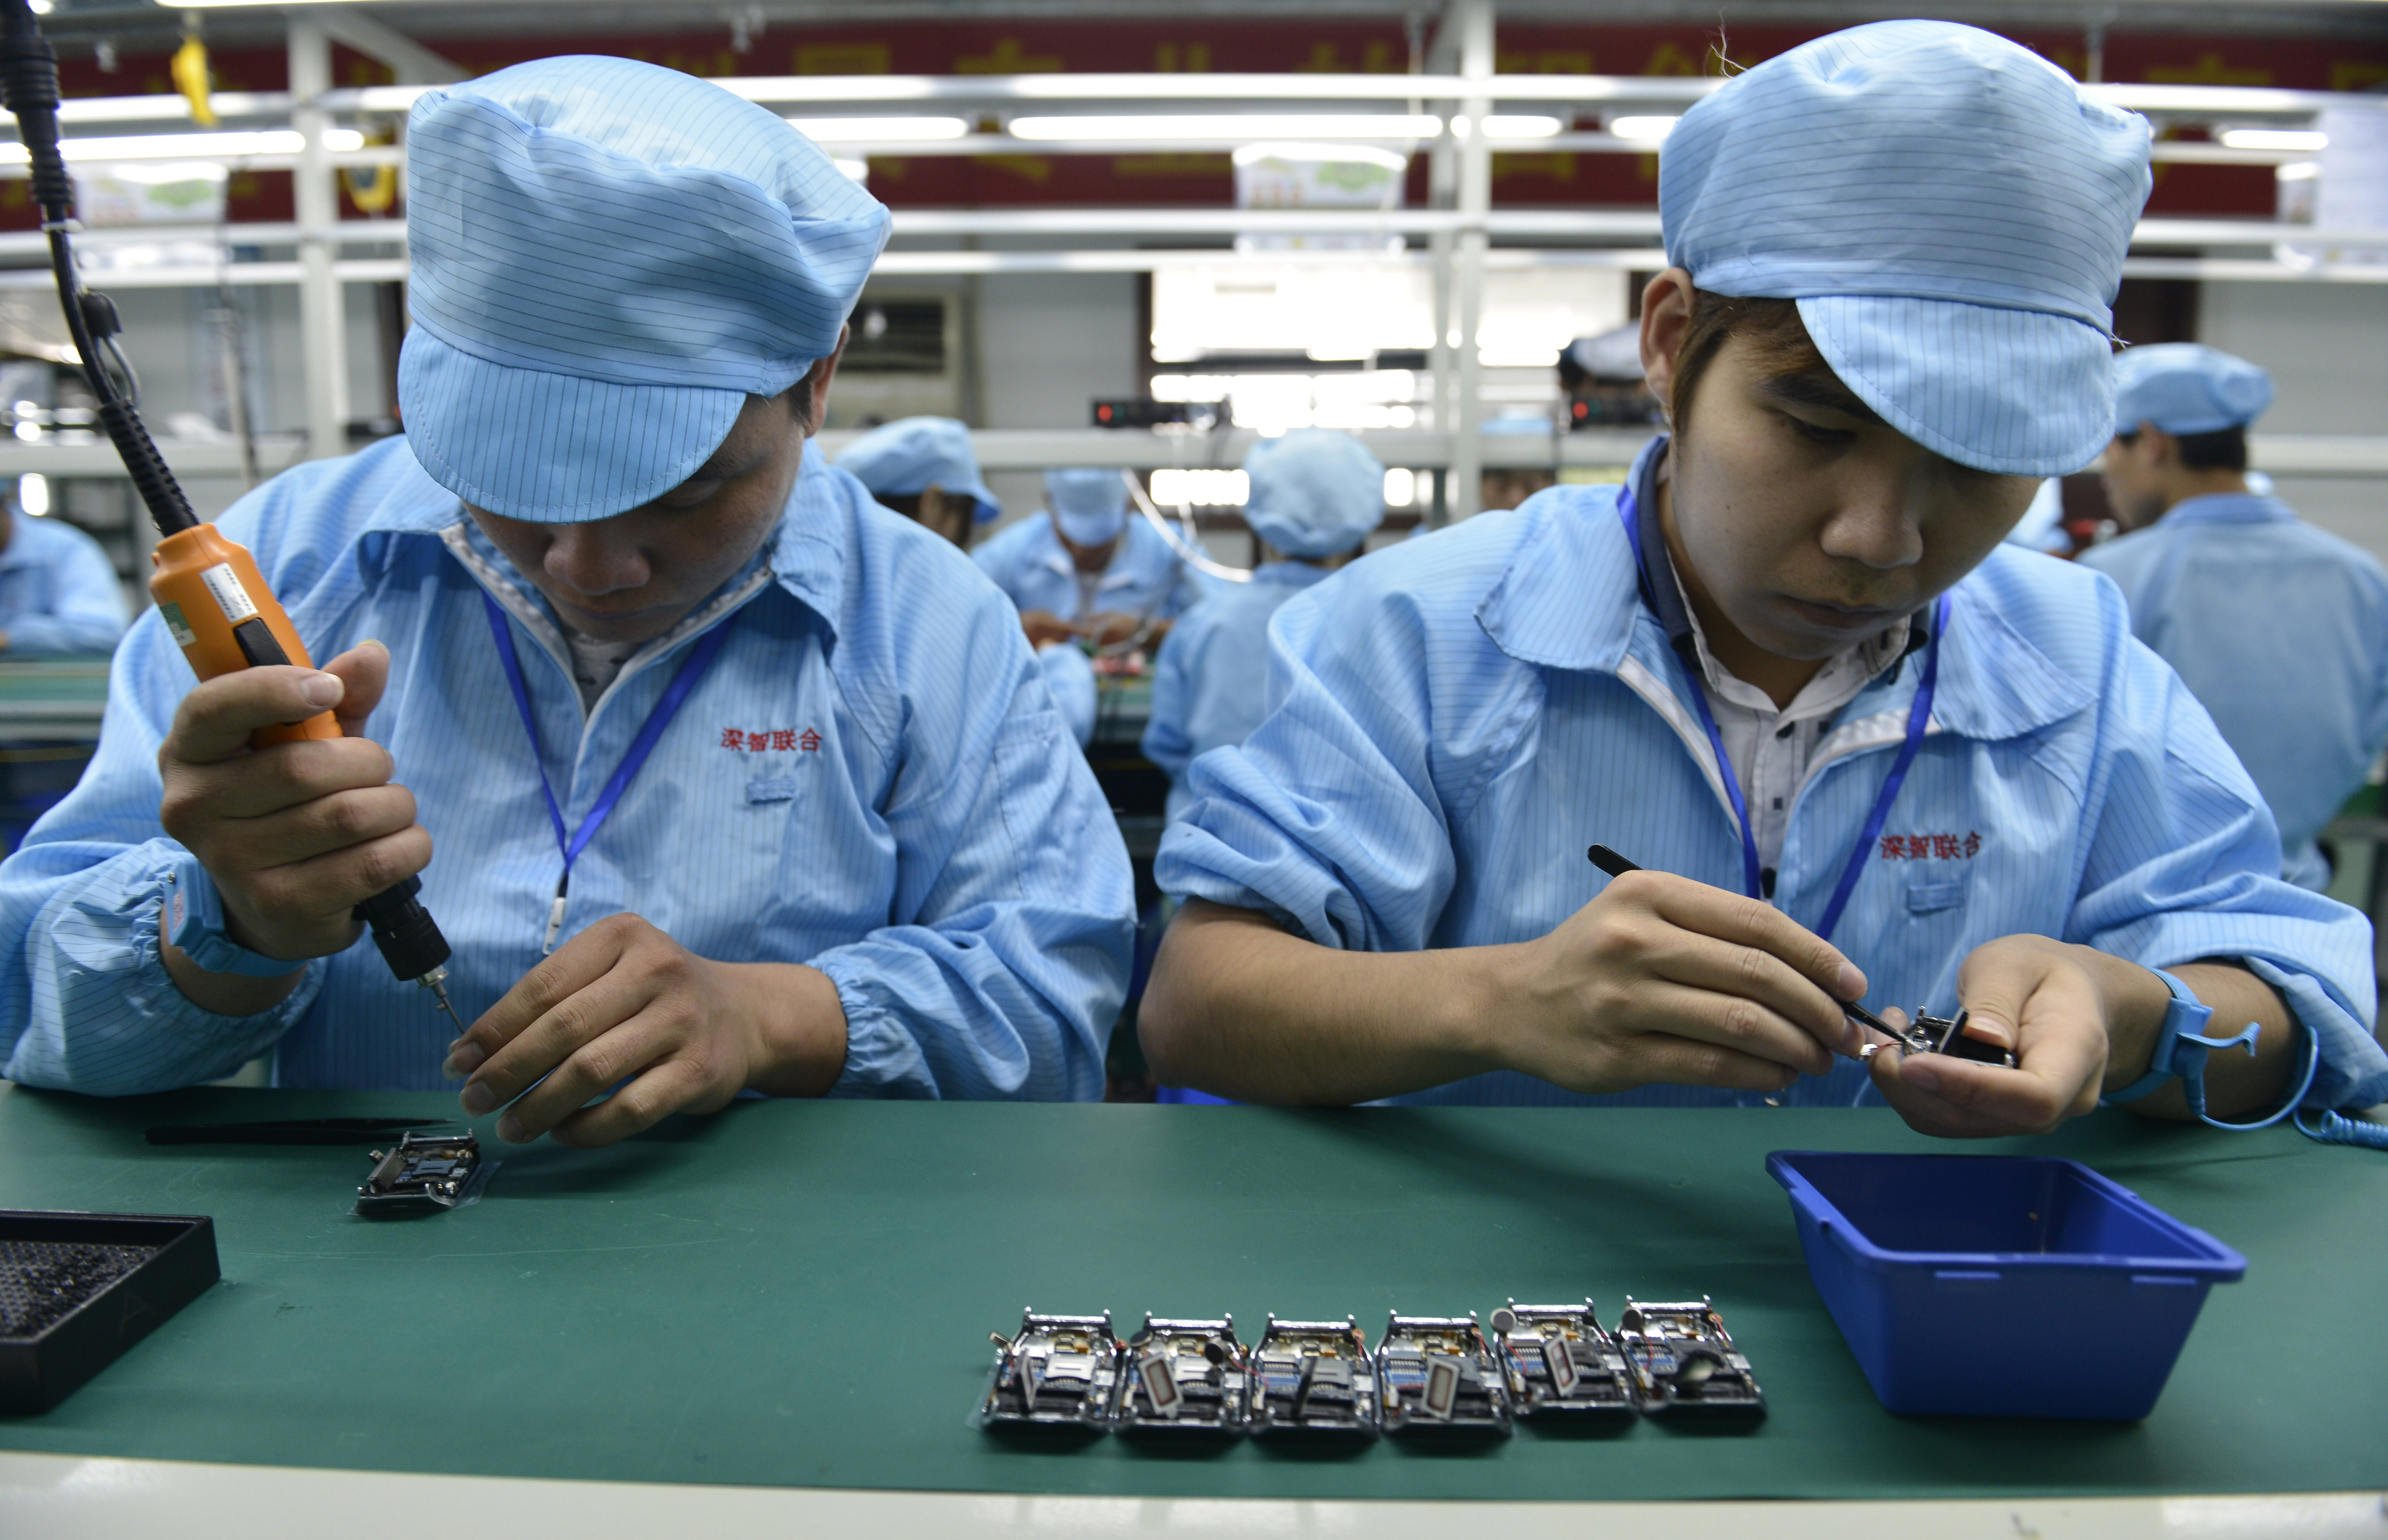 This picture taken on April 22, 2015 shows Chinese workers assembling a cheaper local alternative to the Apple Watch in a factory producing thousands every day in Shenzhen, in southern China's Guangdong province. (STR/AFP via Getty Images)